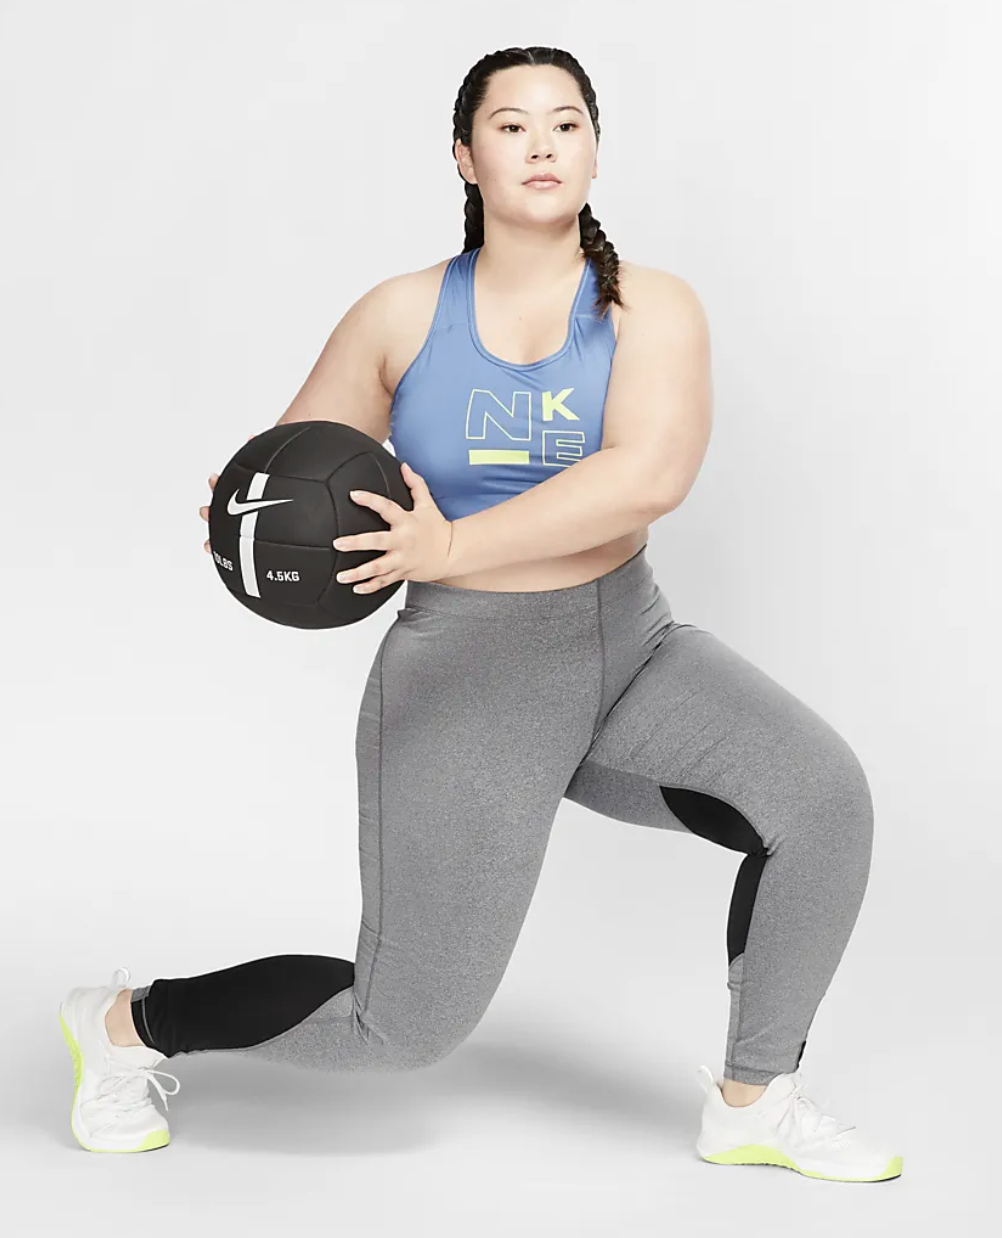 A Nike model wears a blue Swoosh Sports Bra with gray leggings while they lift a weighted ball